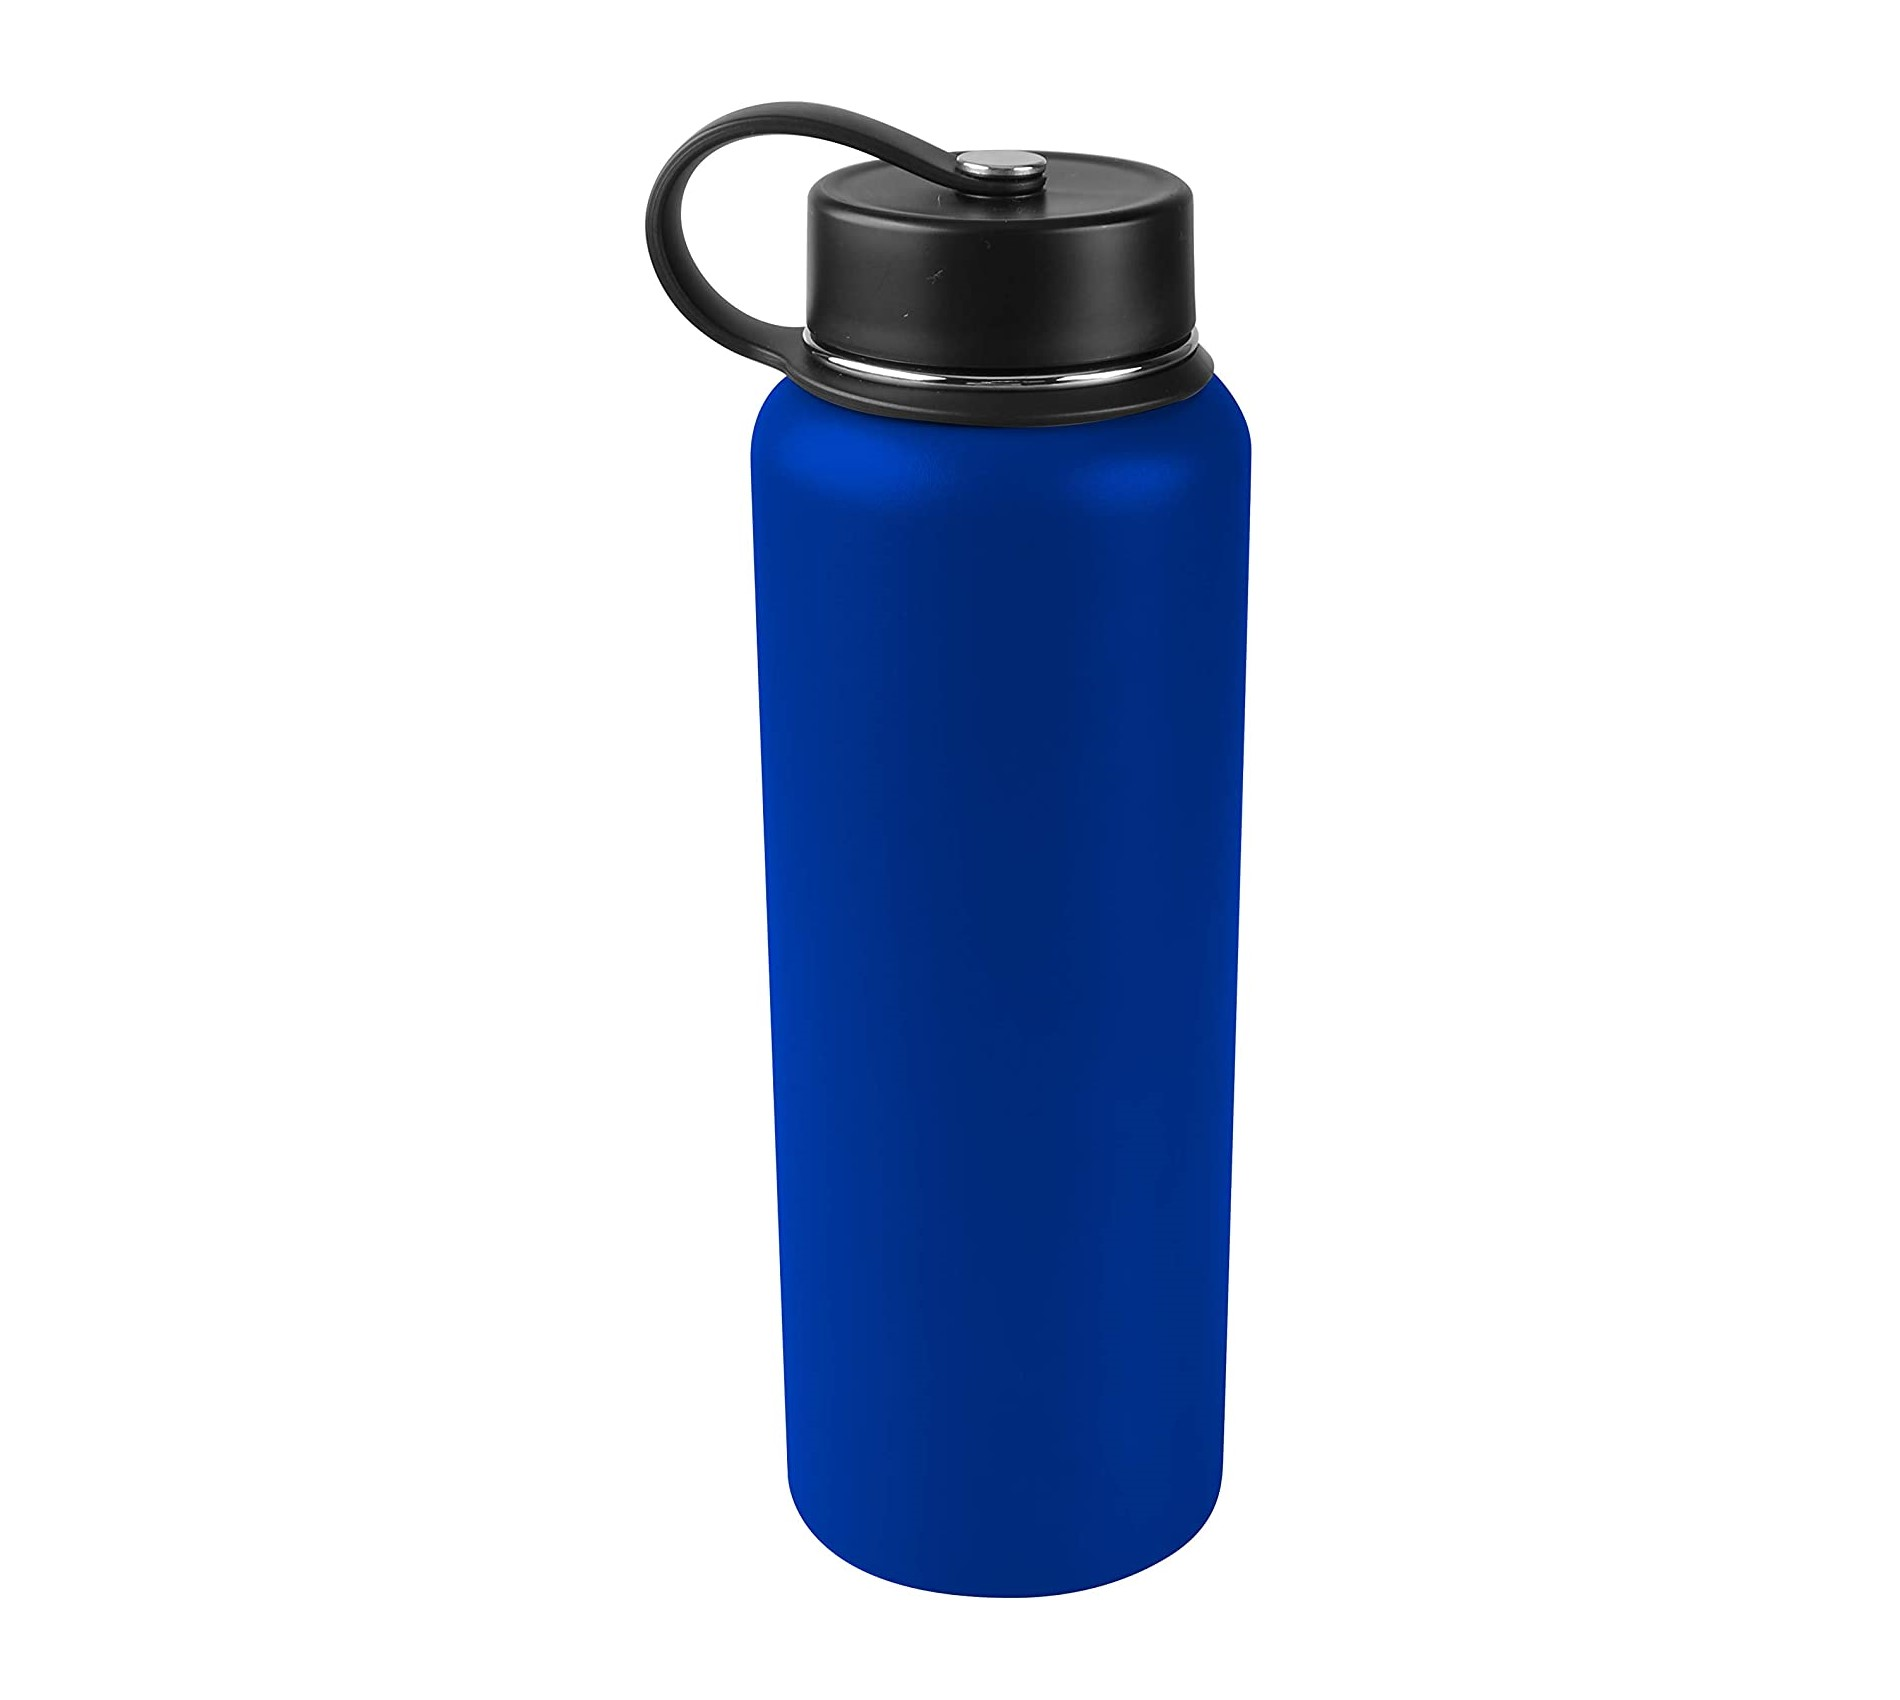 Tahoe Trails 40 oz Double Wall Vacuum Insulated Stainless Steel Water Bottle, Spectrum Blue